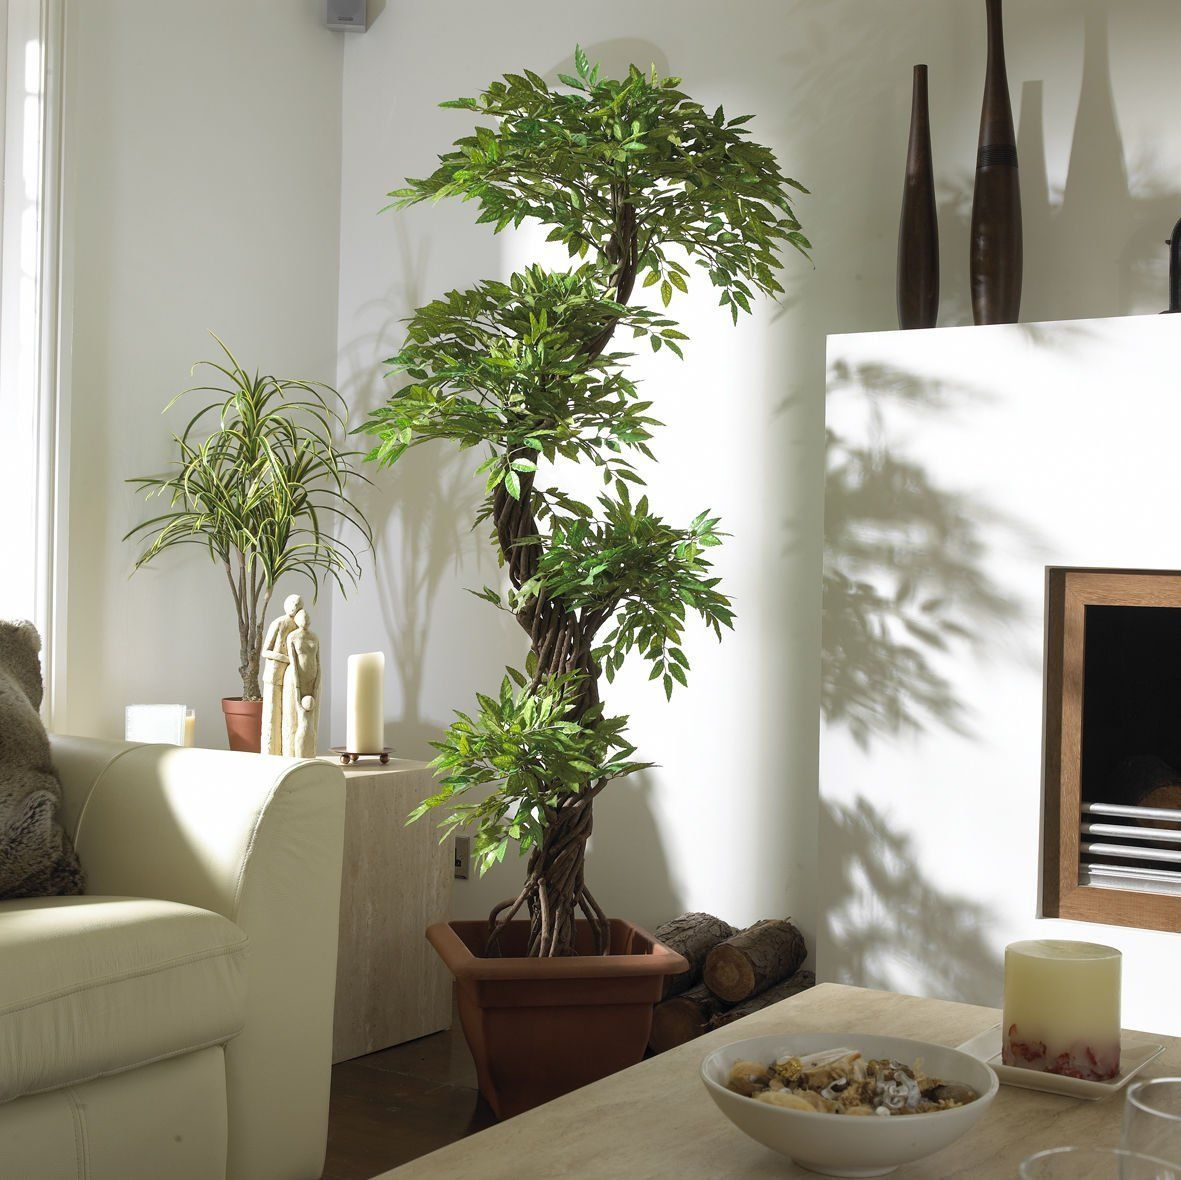 Ordinaire Large Replica Indoor Plant, Stylish Luxury Artificial Japanese Fruticosa  Tree Handmade Using Real Bark   4 Tall. Conservatory Home Office Restaurant  Bar ...